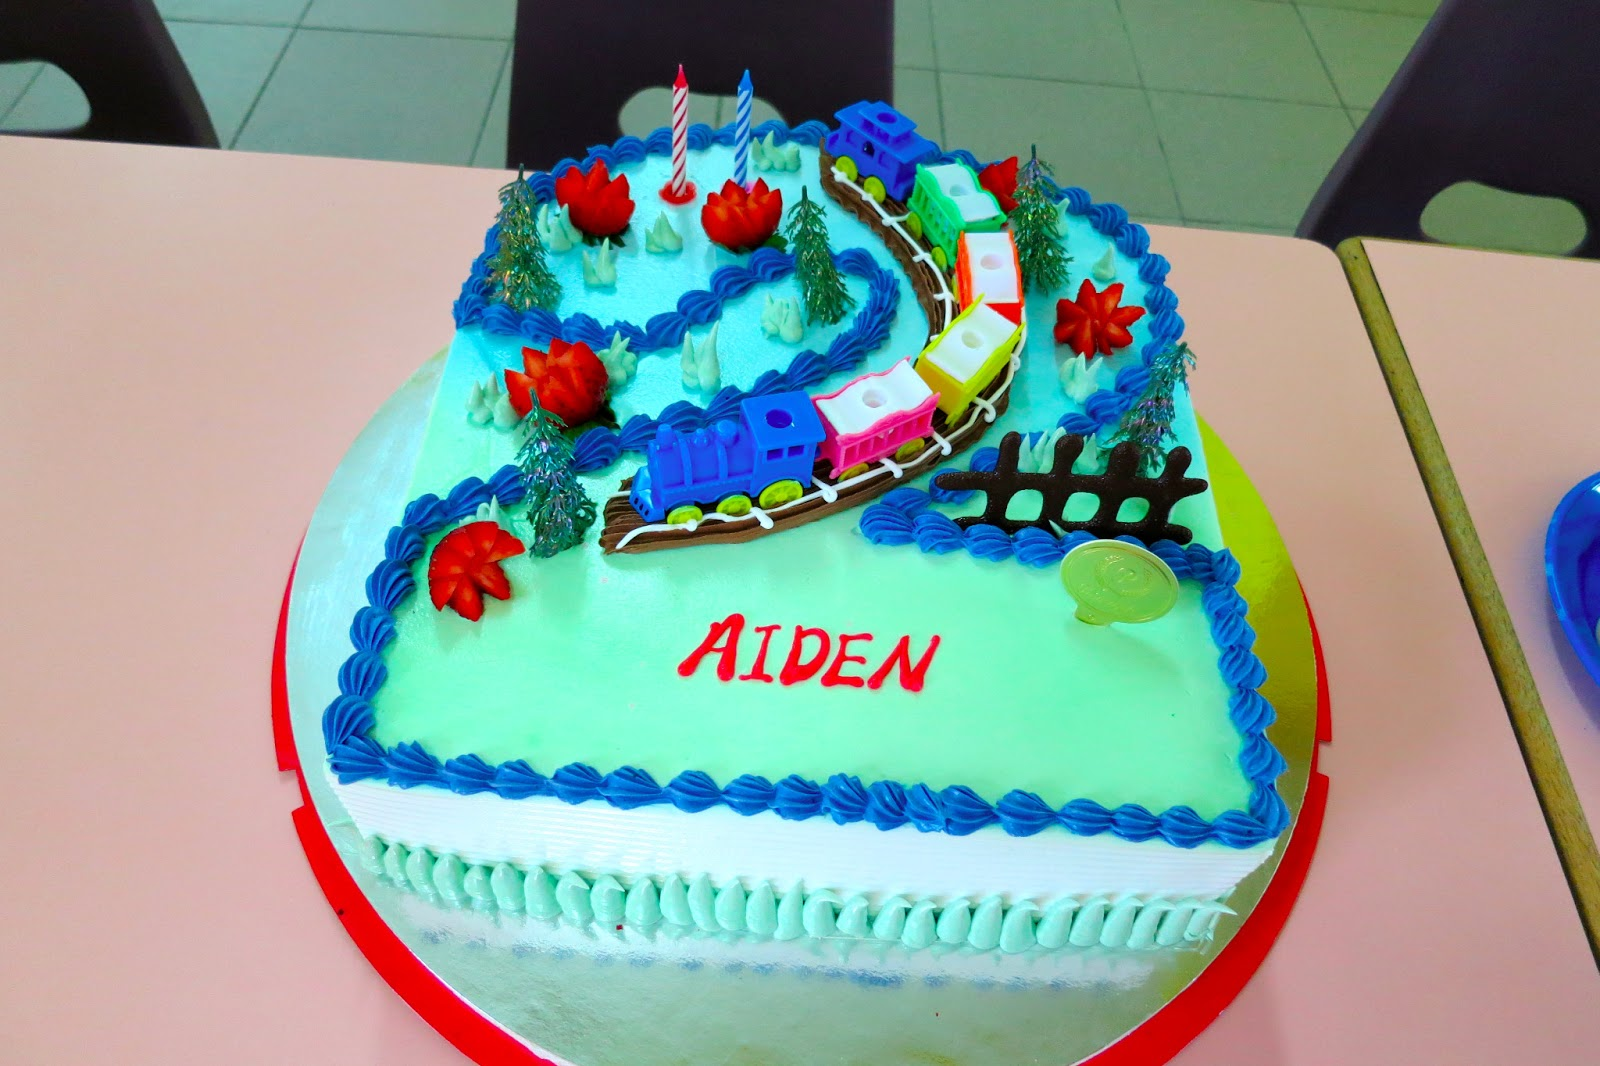 Happy 2nd Birthday Aiden